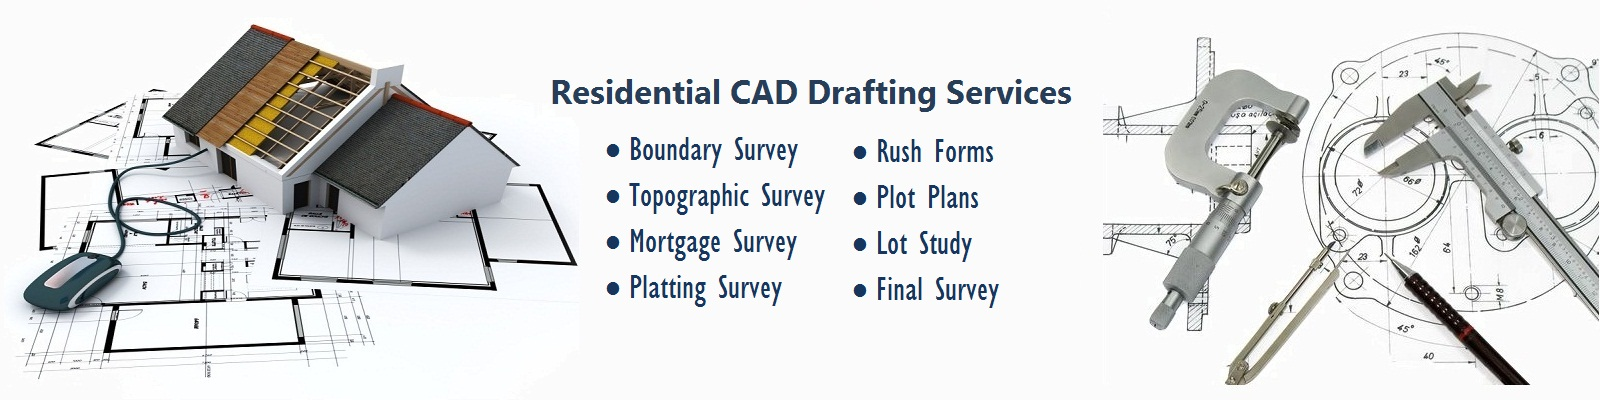 Residential CAD drafting Services